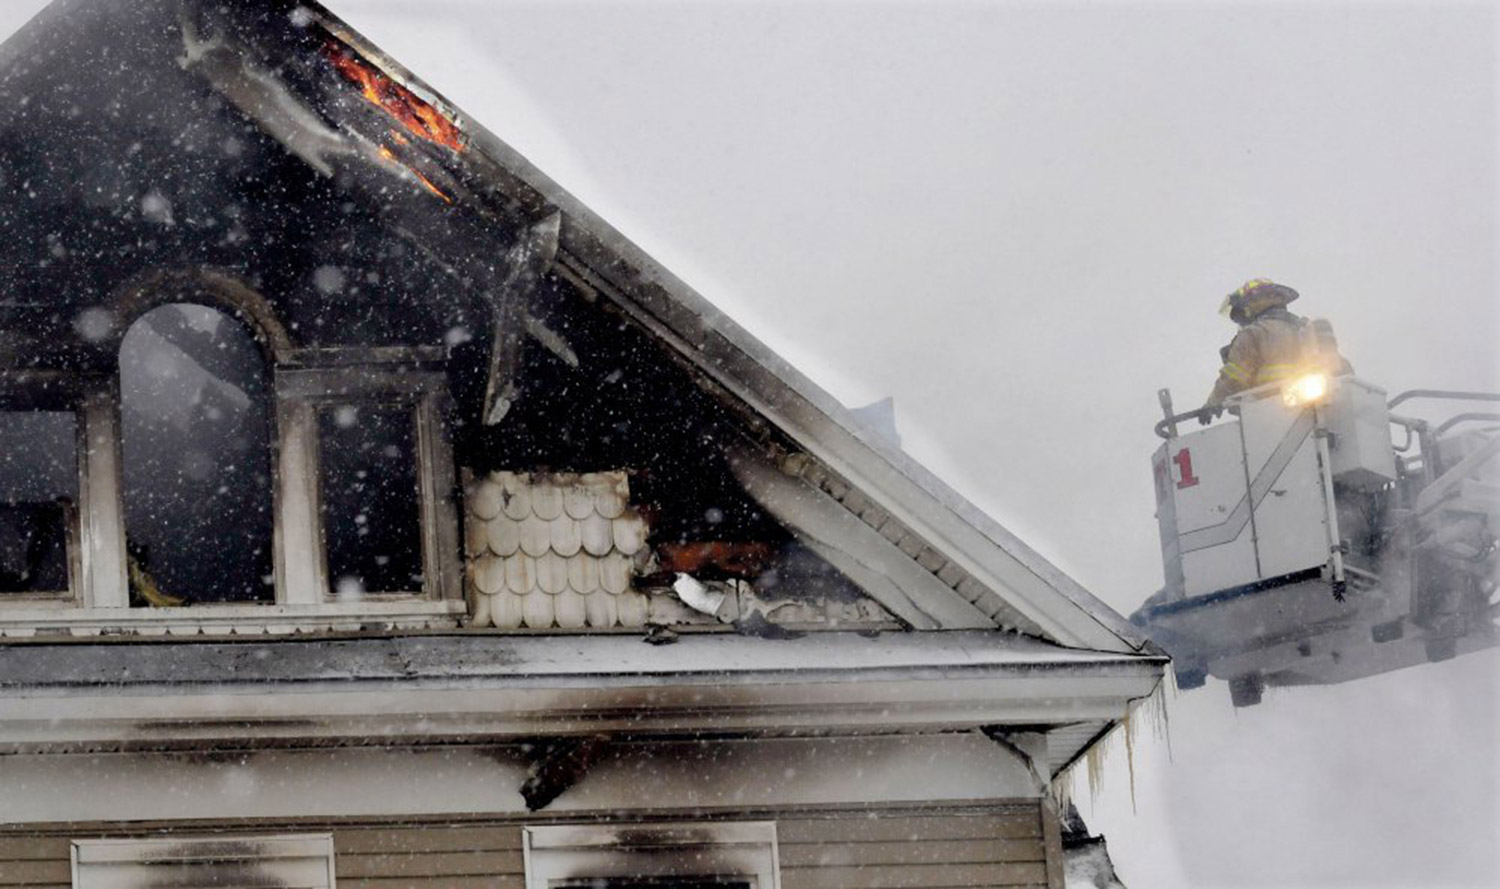 Fire can be seen in an eave as firefighters battle a fire from atop a ladder at an apartment building on Summer Street in Waterville early Wednesday morning.